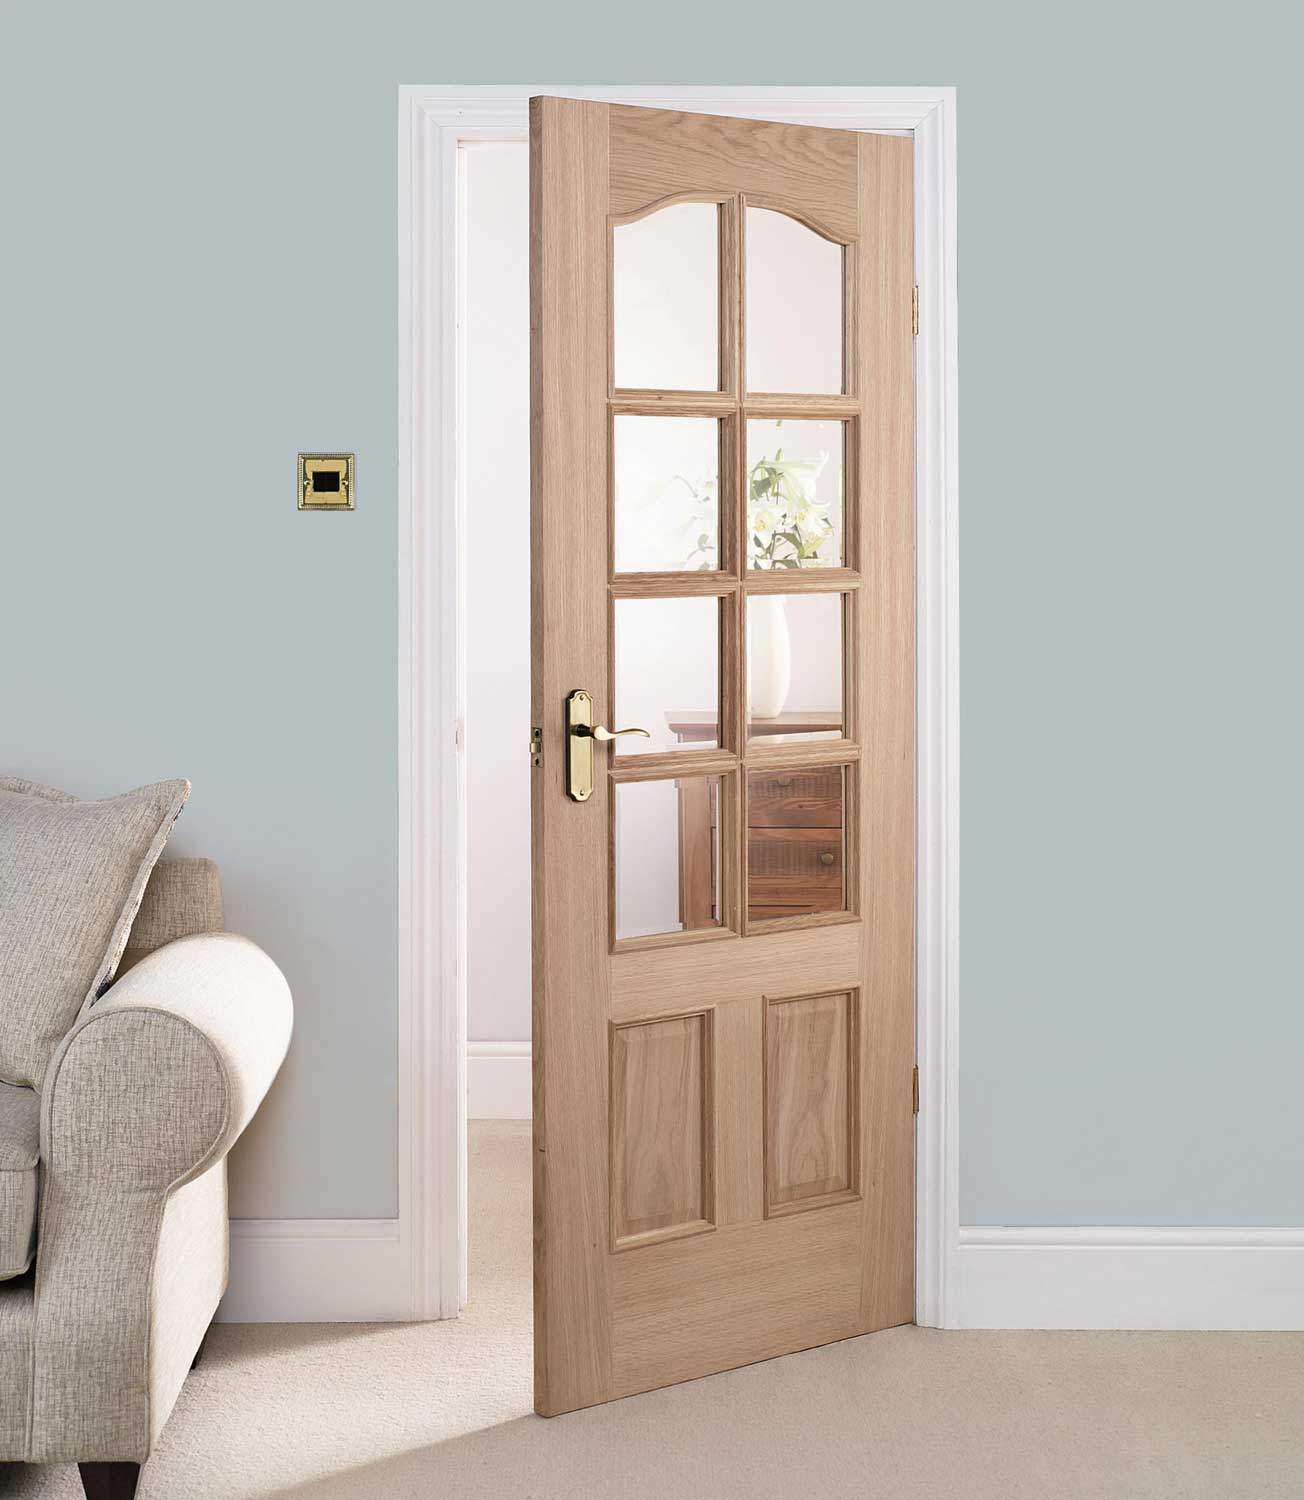 Solid oak raised panel interior doors may be found in many furniture units